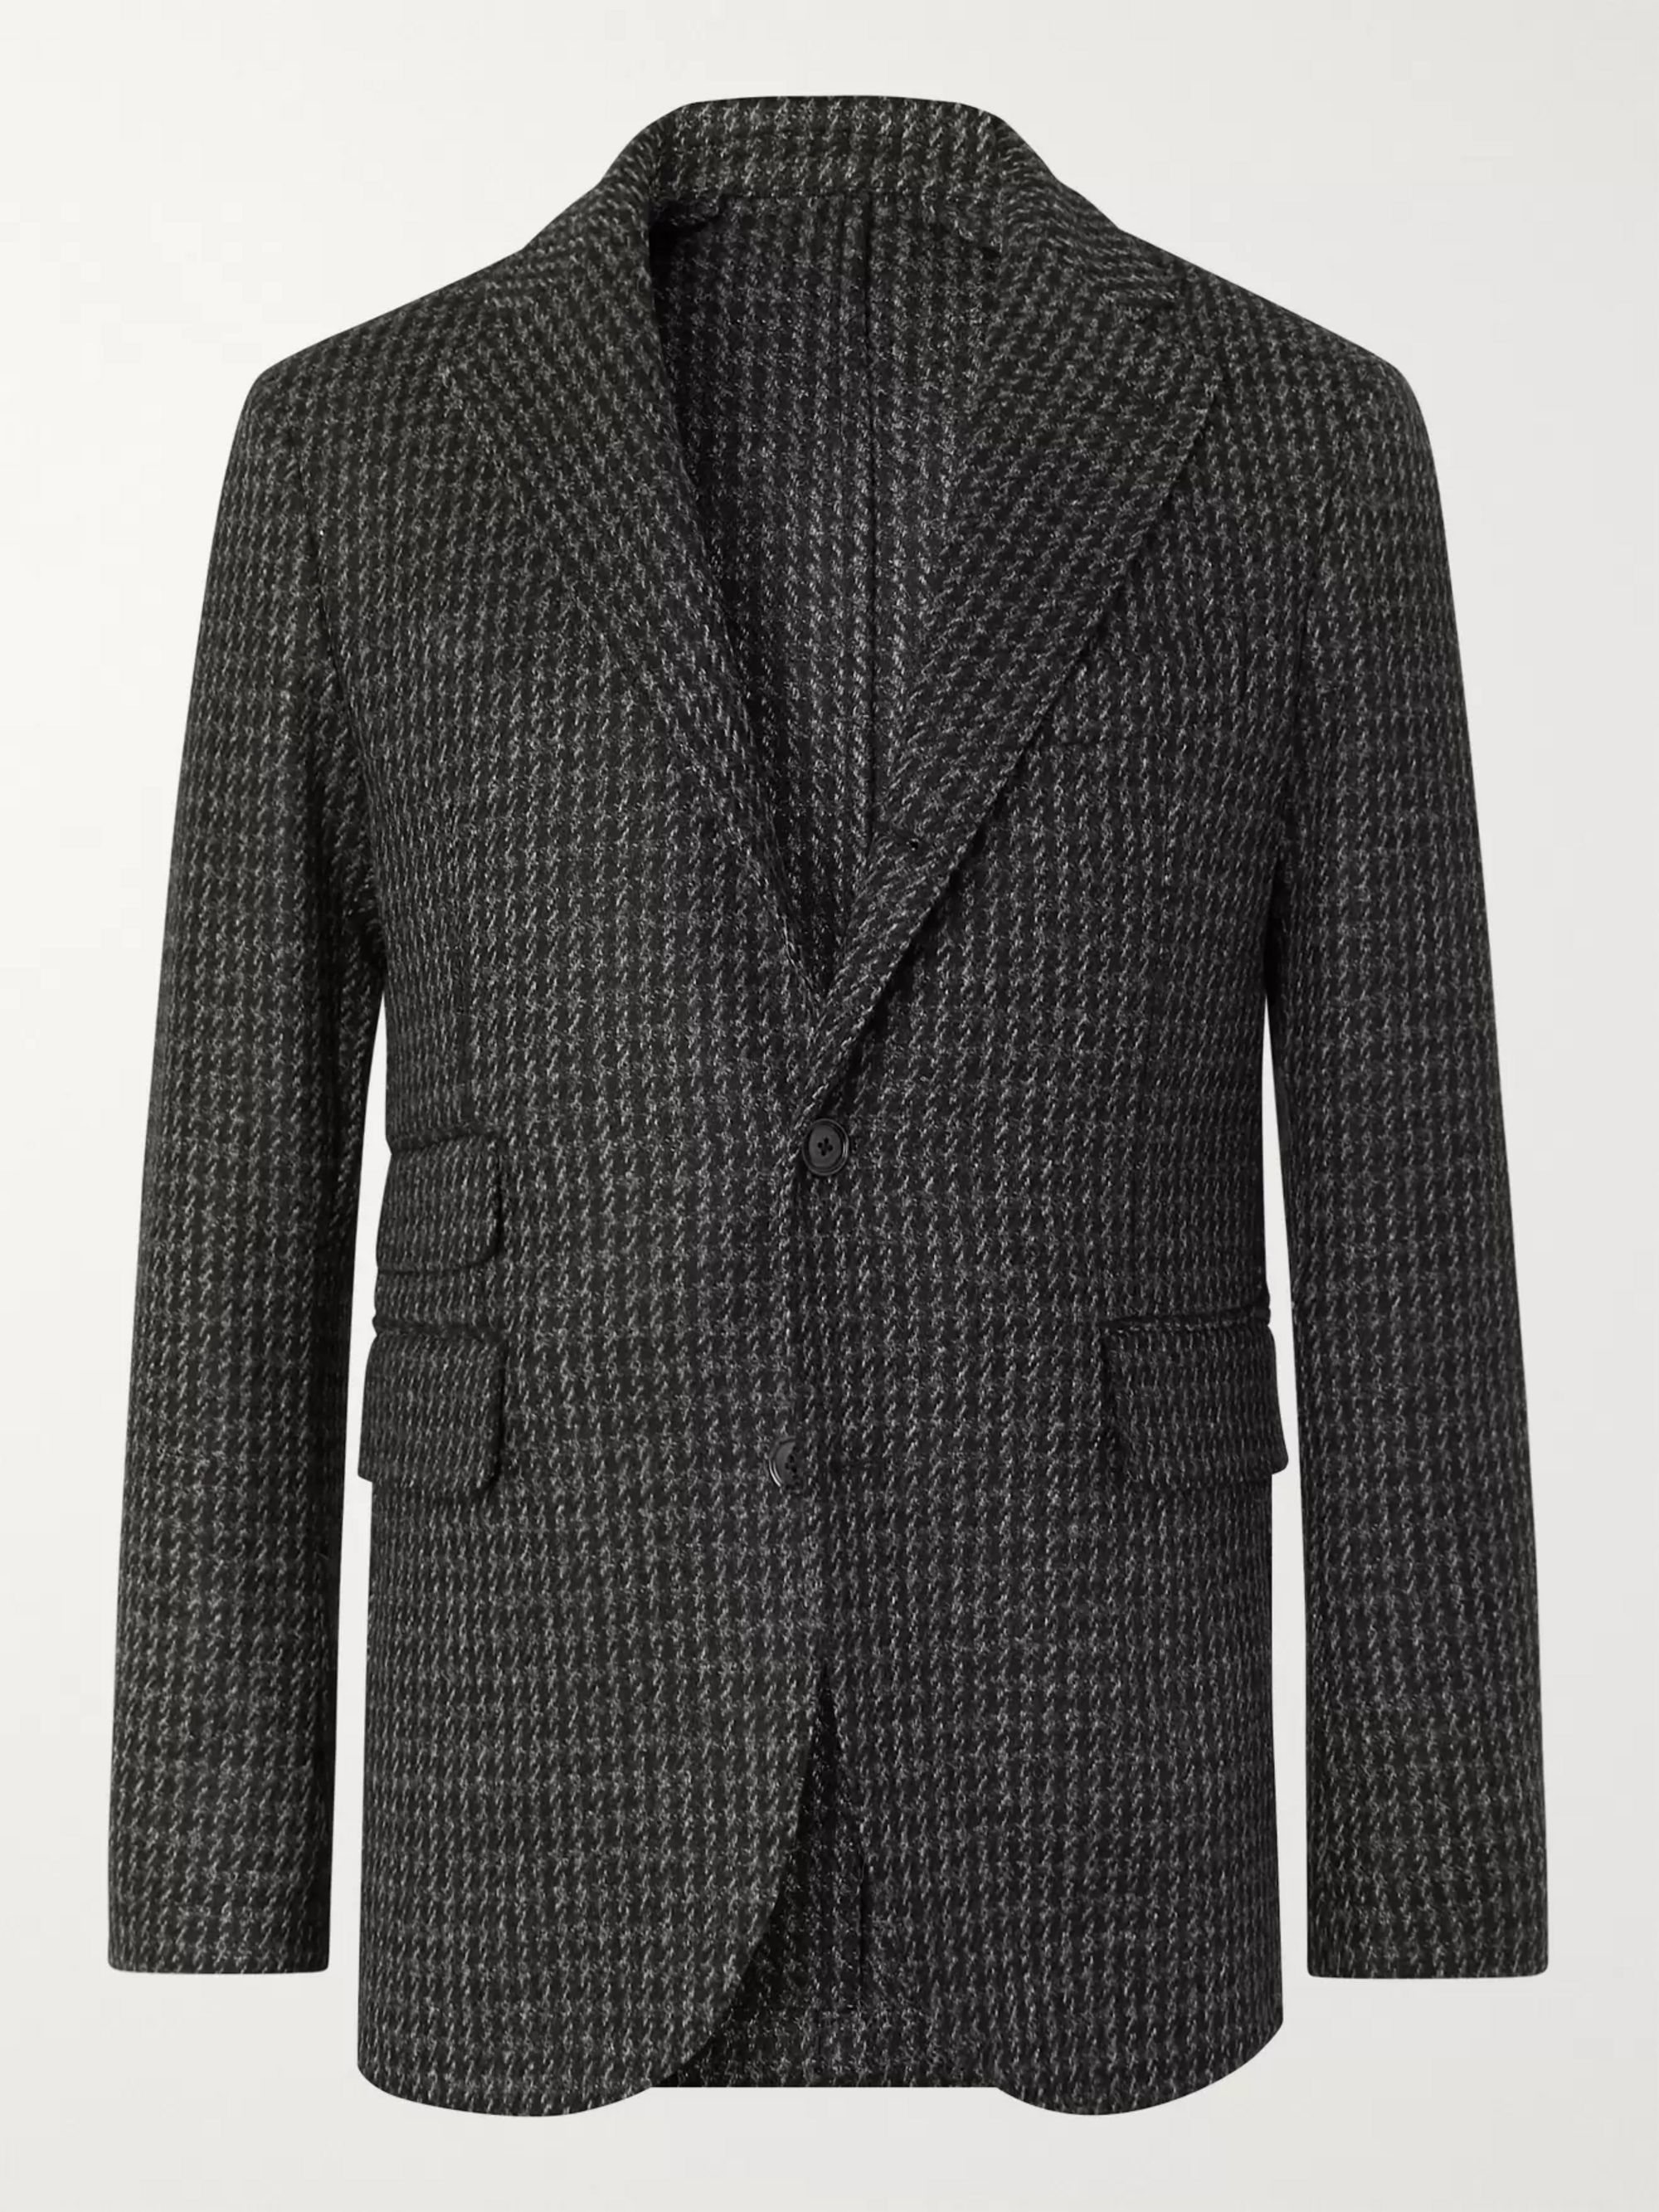 MAN 1924 Grey Kennedy Puppytooth Wool Blazer